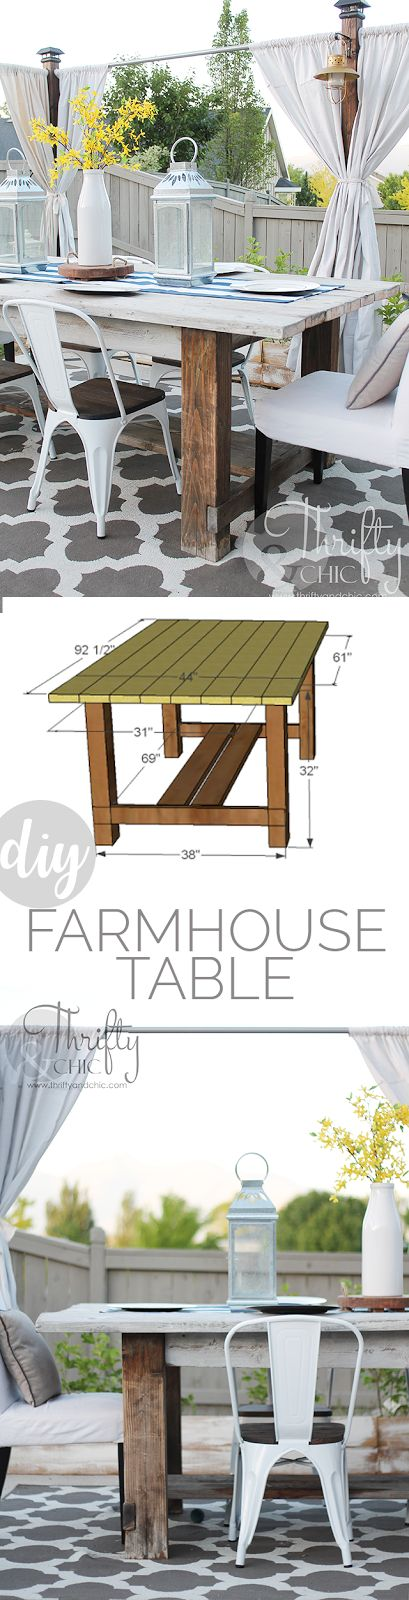 DIY farmhouse table tutorial. Outdoor decor and decorating ideas. Patio decor and decorating